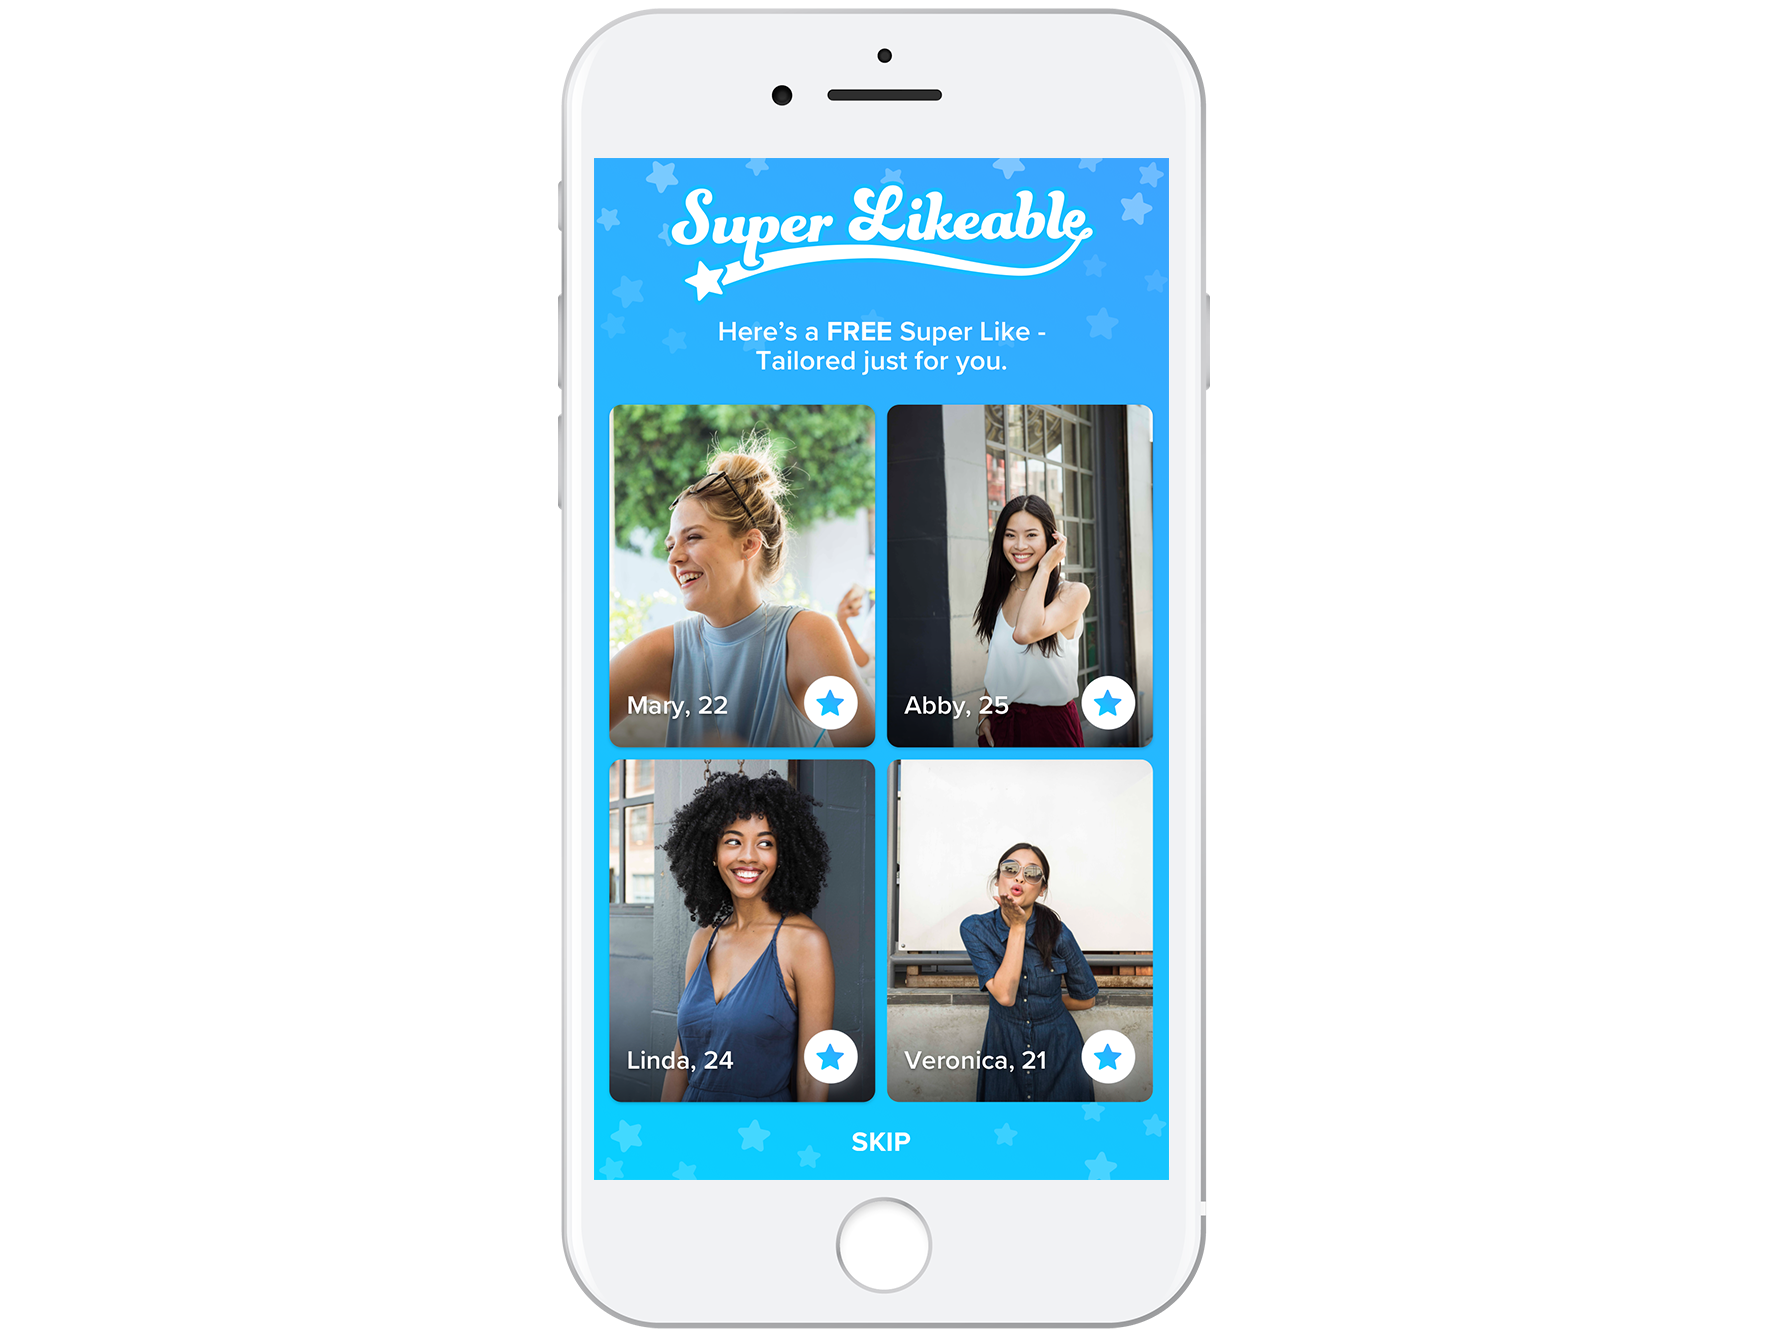 tinder super likeable 001